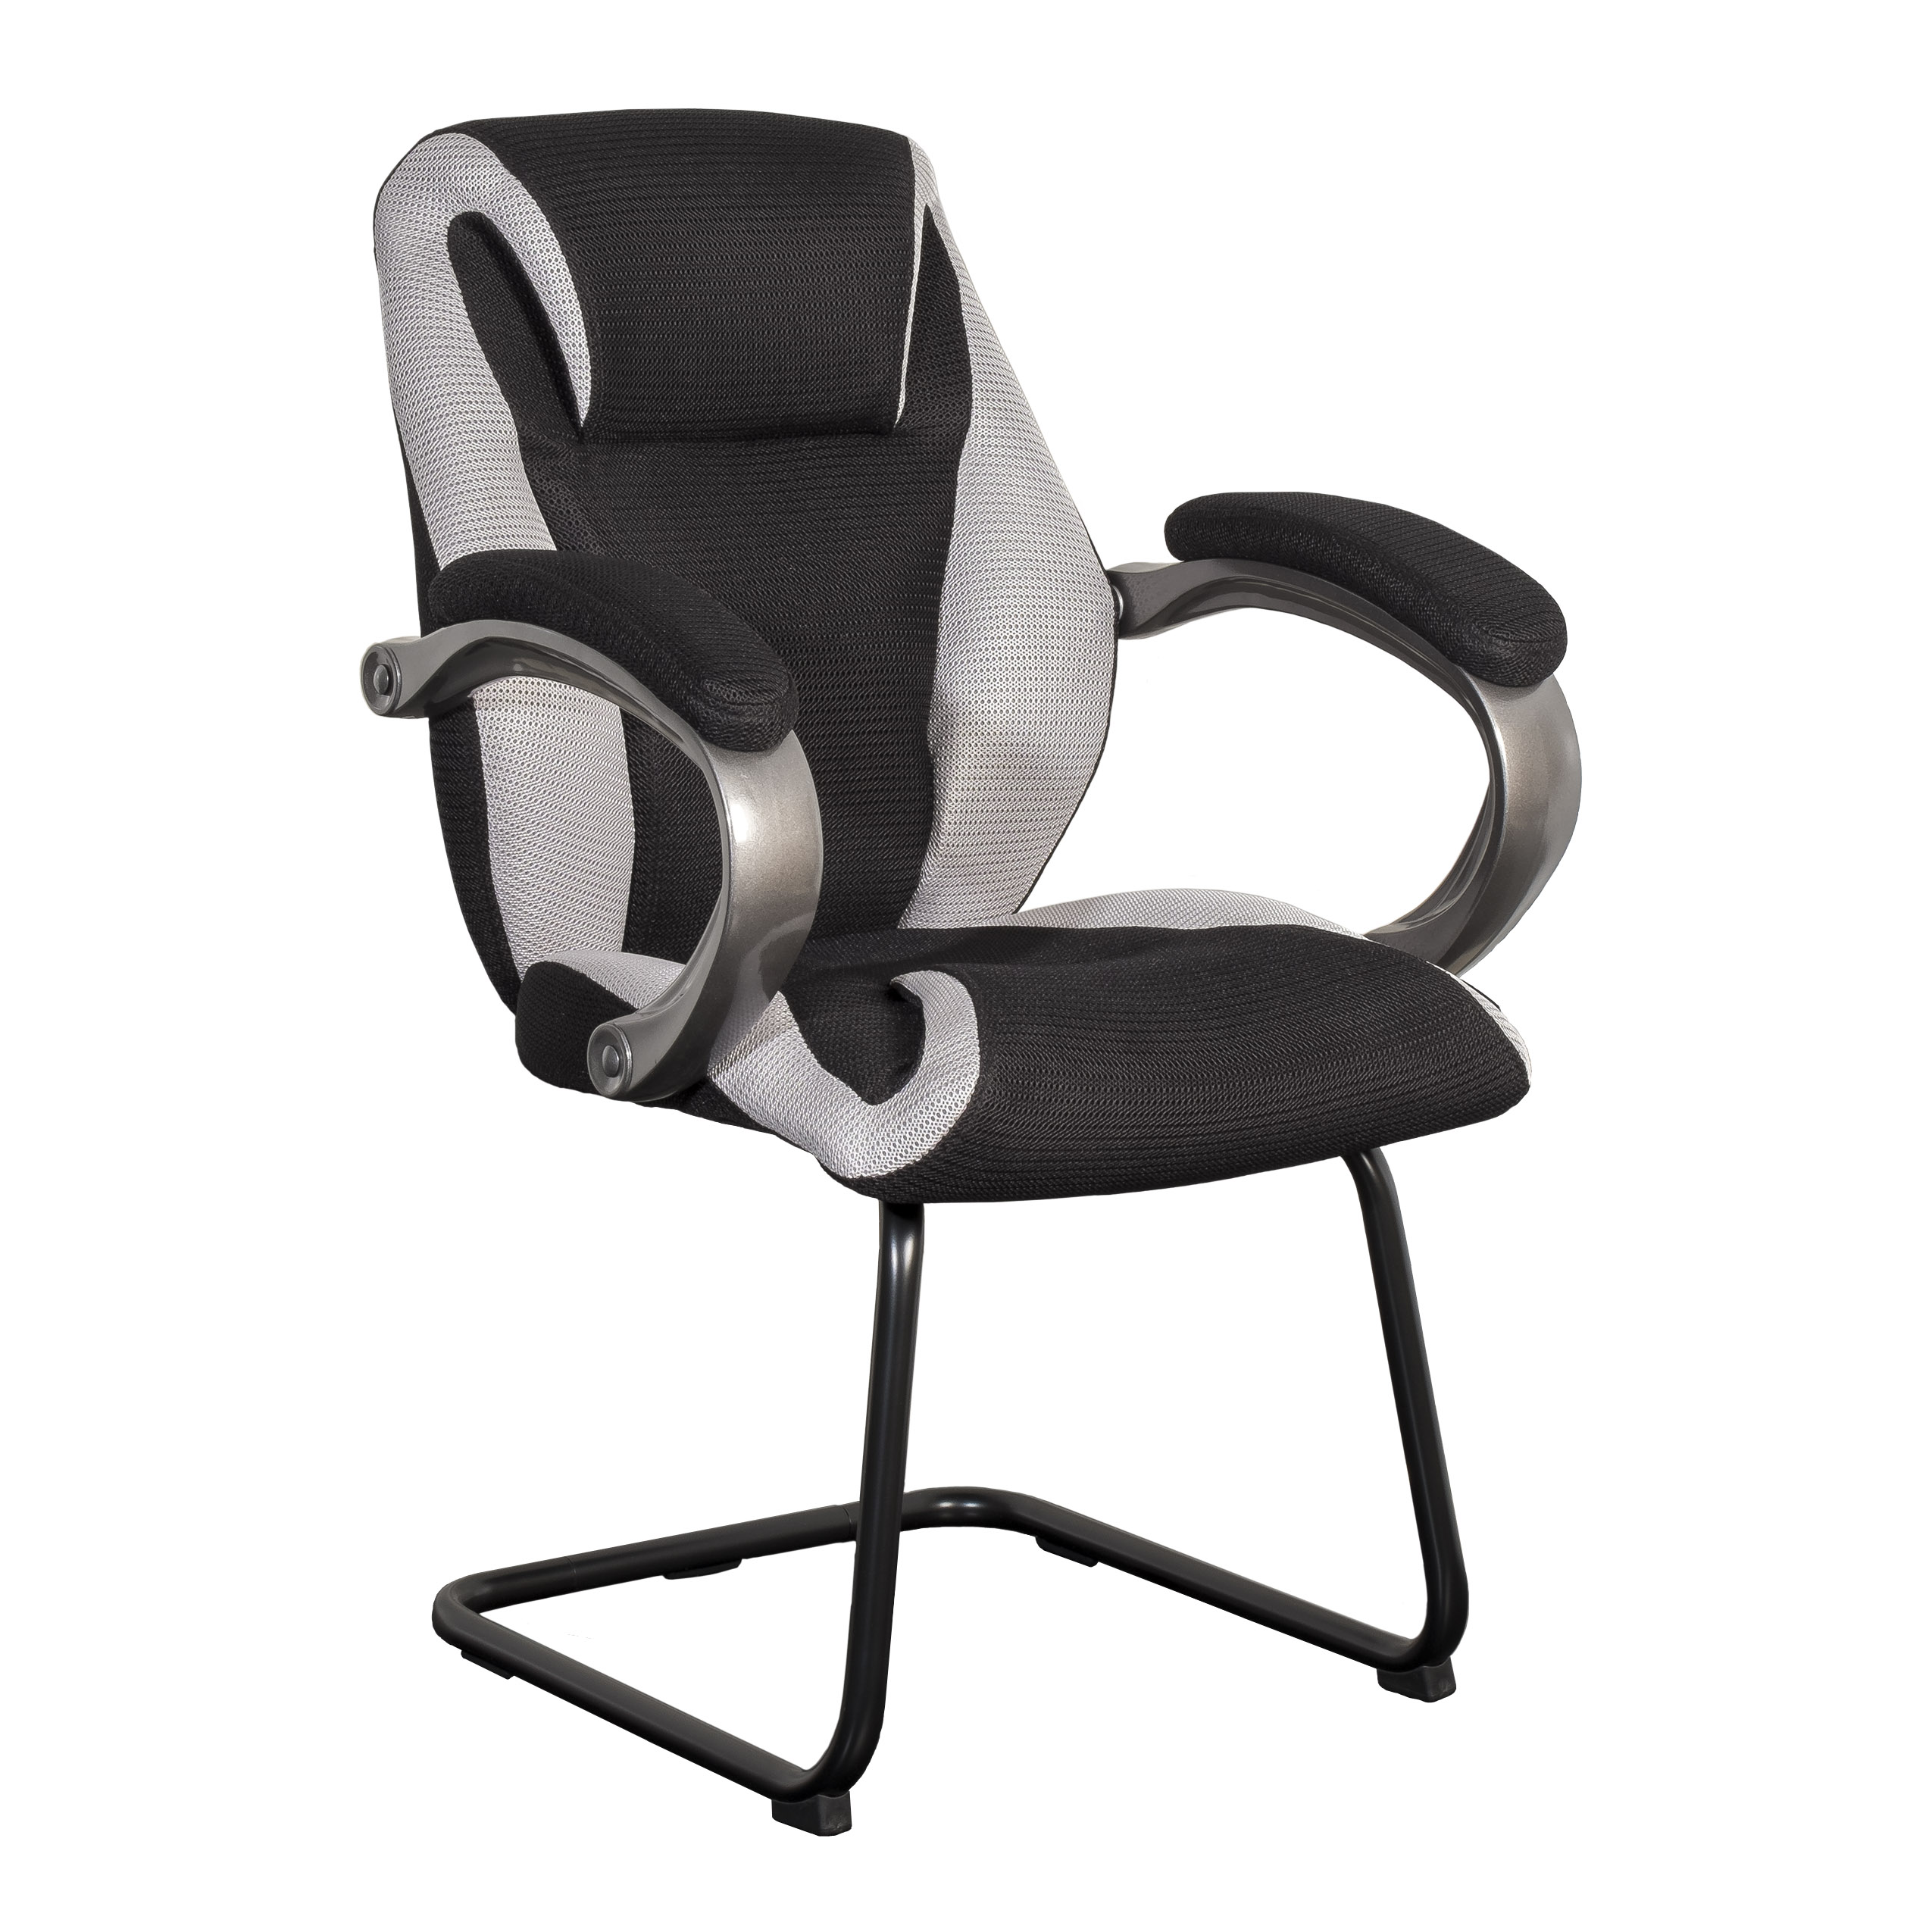 Office Guest Chair Corliving Black And Grey Mesh Fabric Office Guest Chair